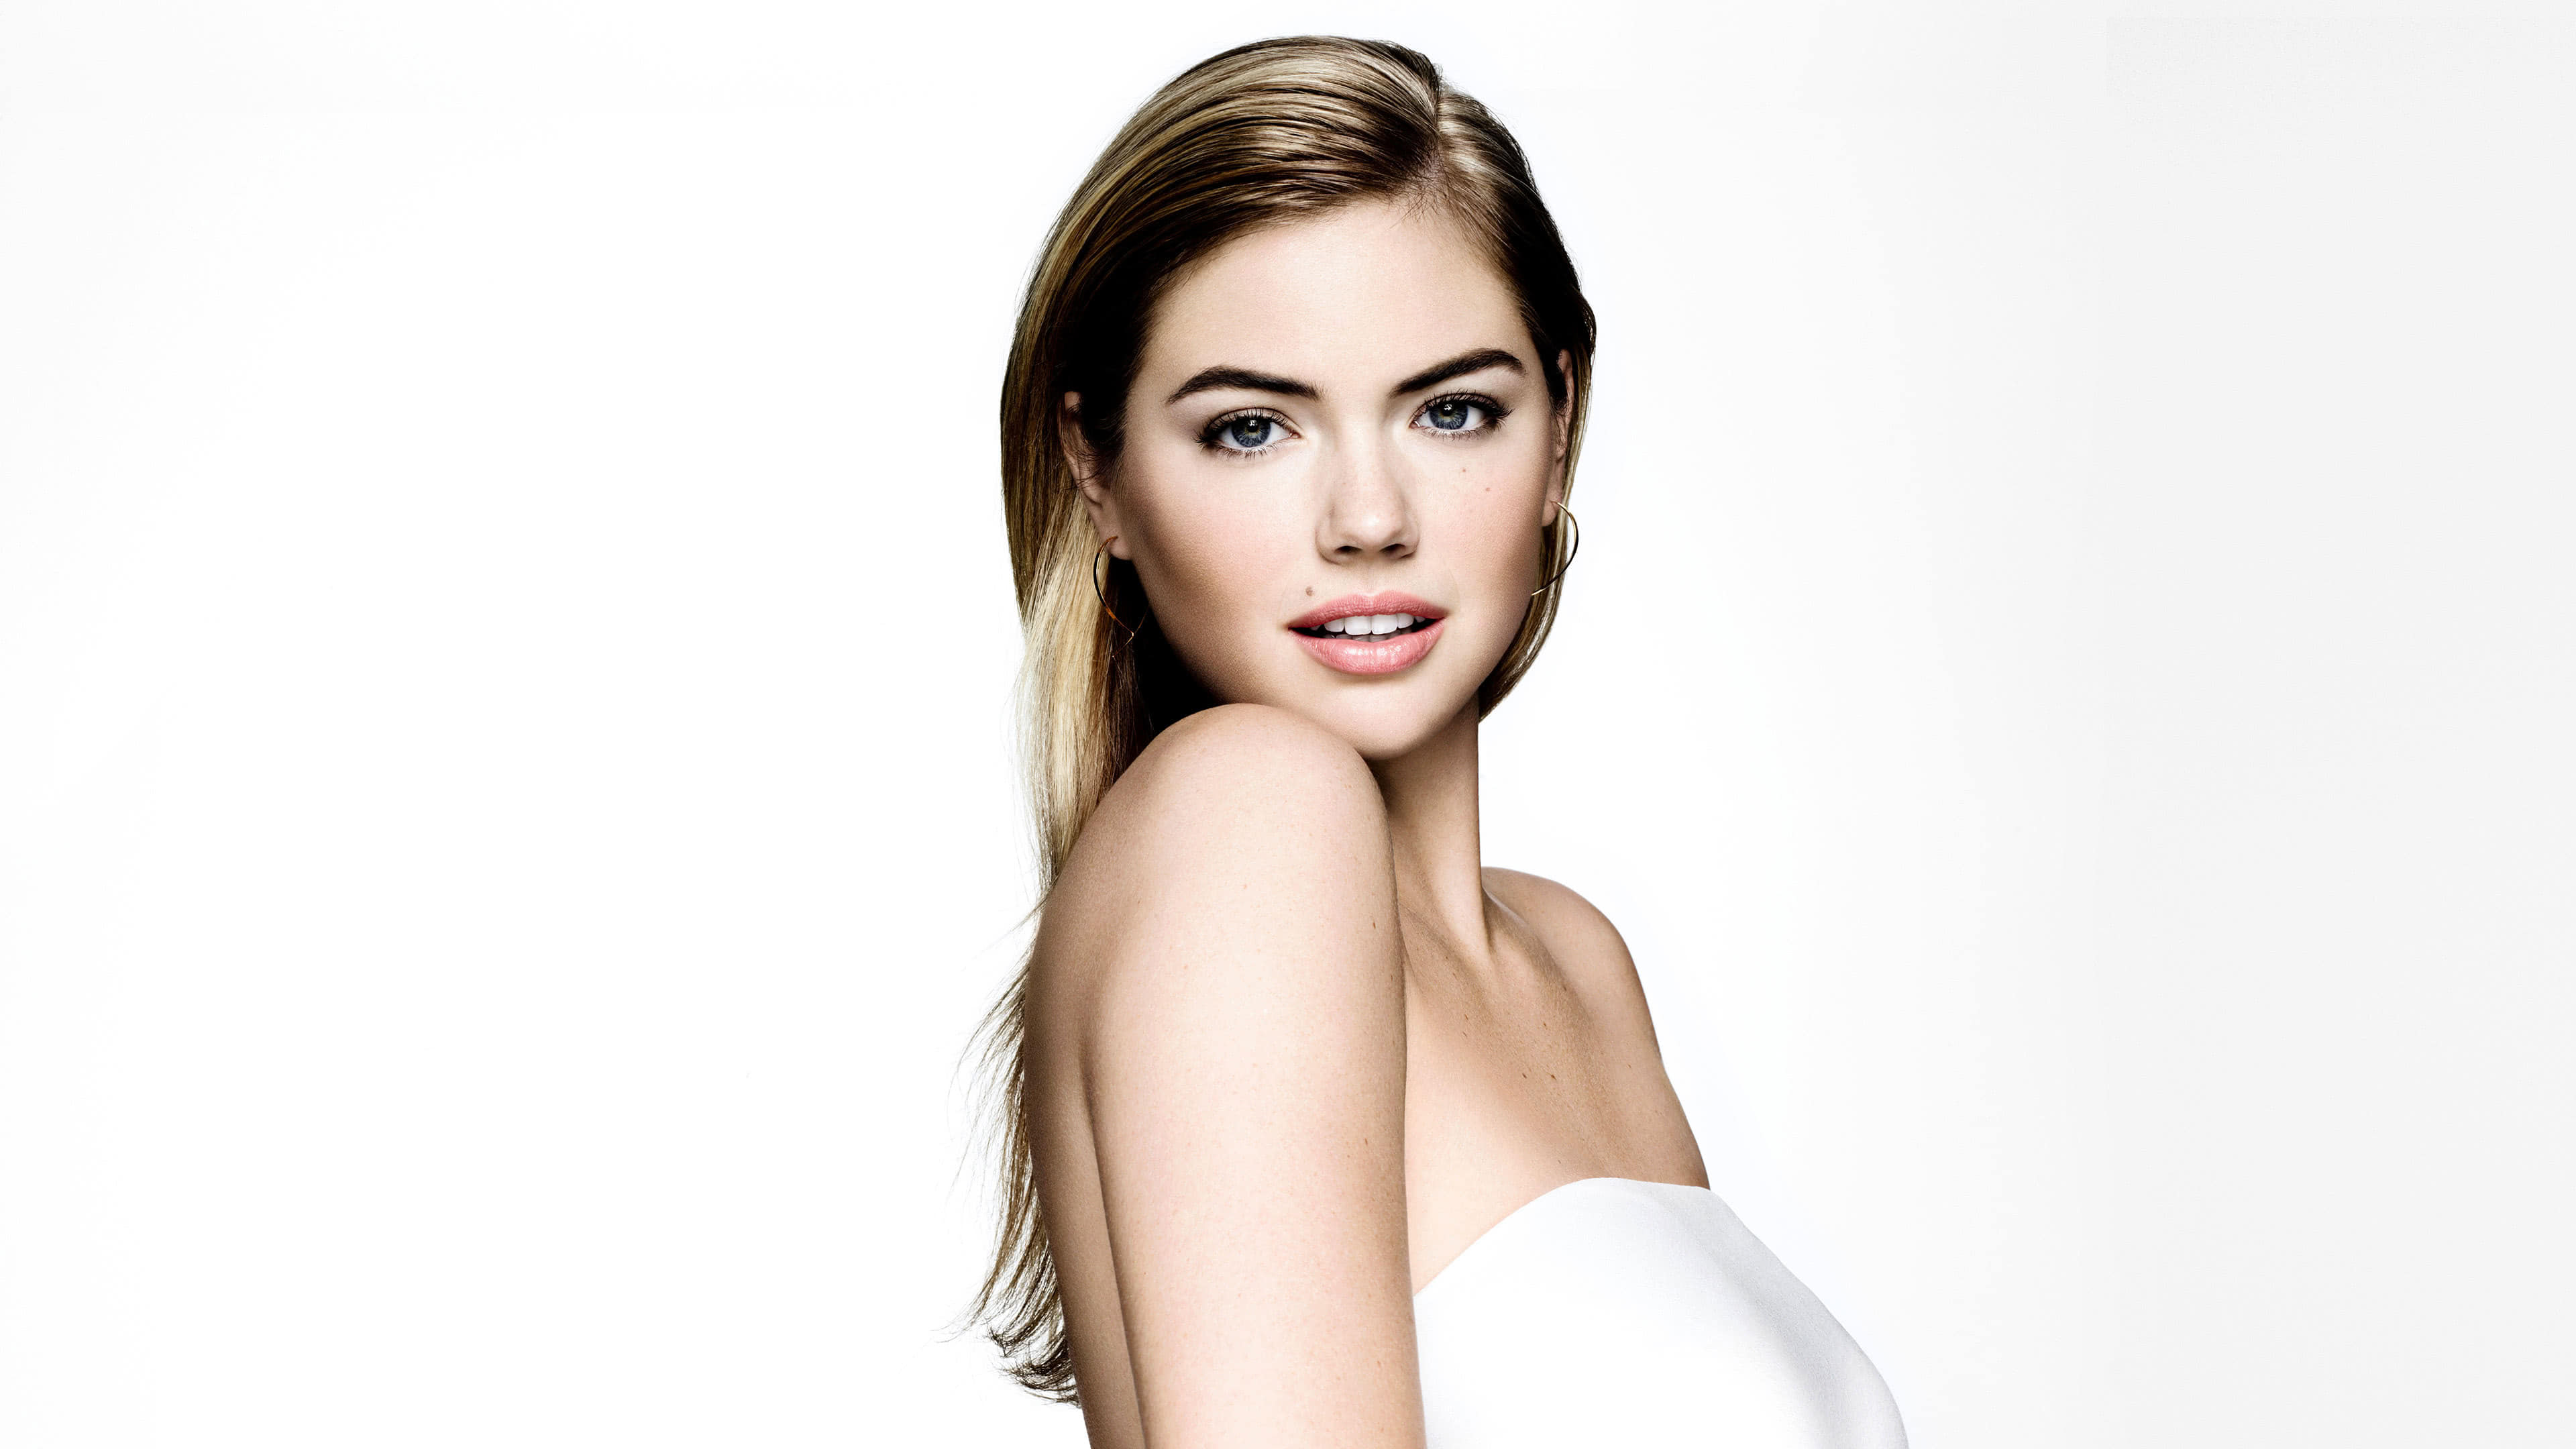 kate upton portrait uhd 4k wallpaper